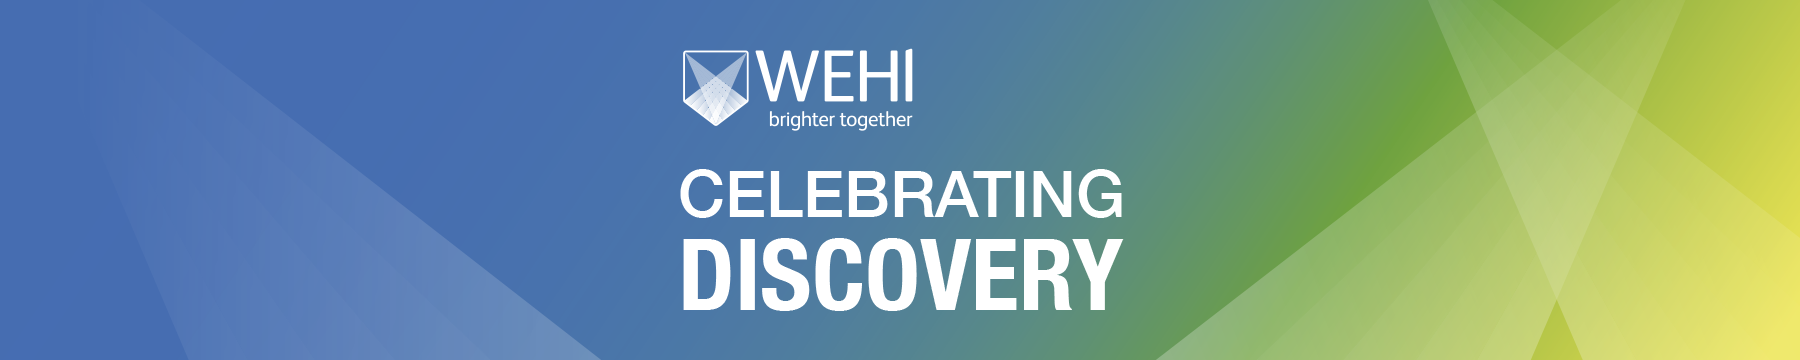 Celebrating Discovery event promotion